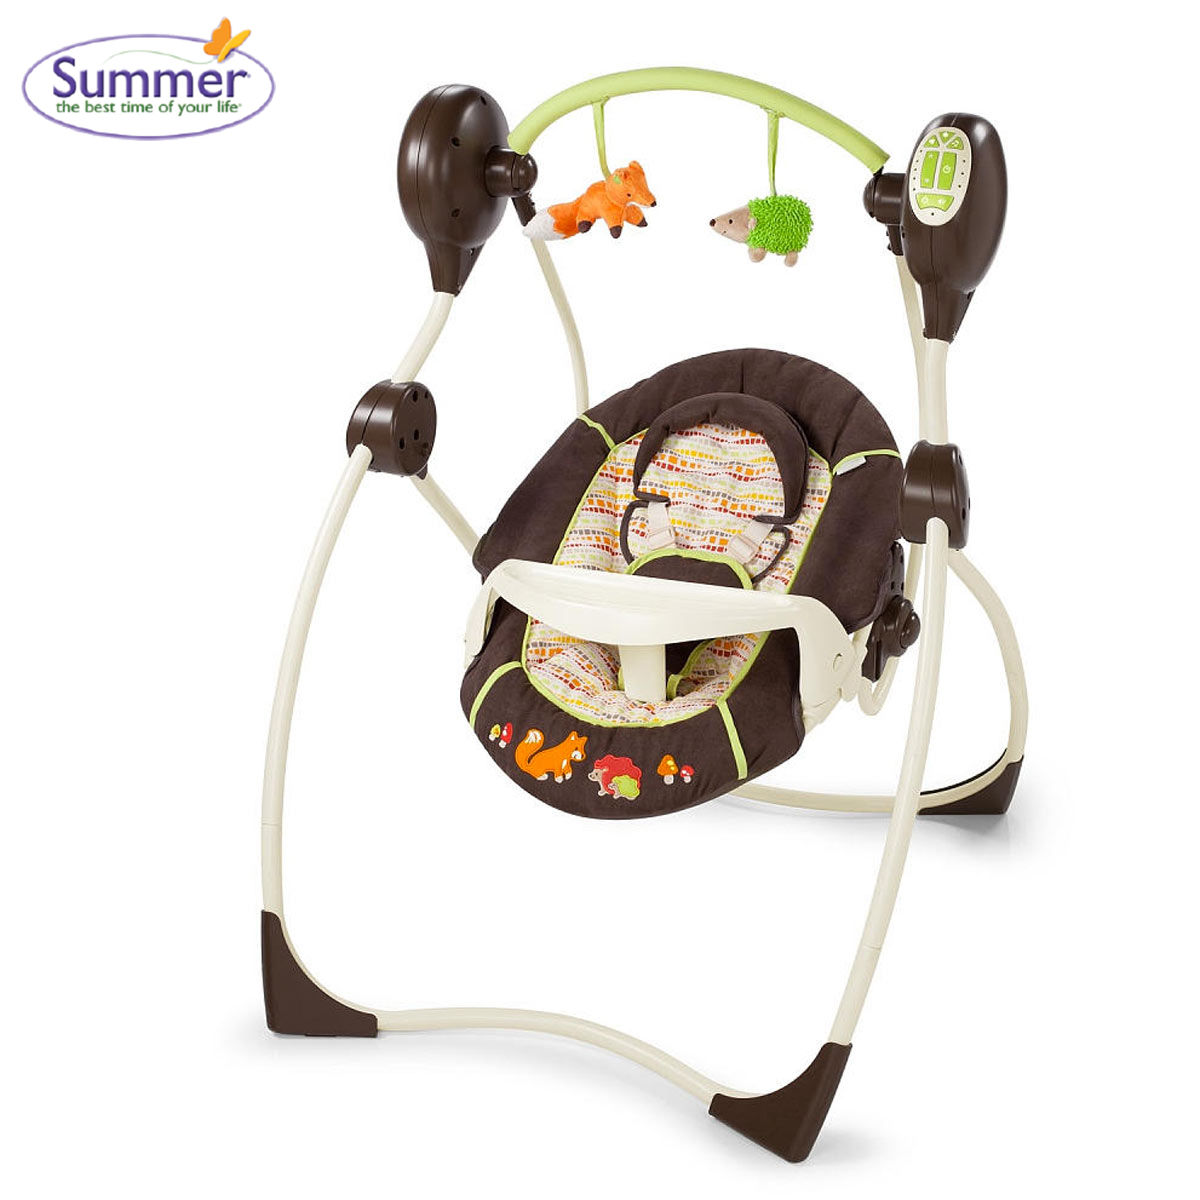 Ghế xích đu Fox & Friend Summer Infant(SM23183)